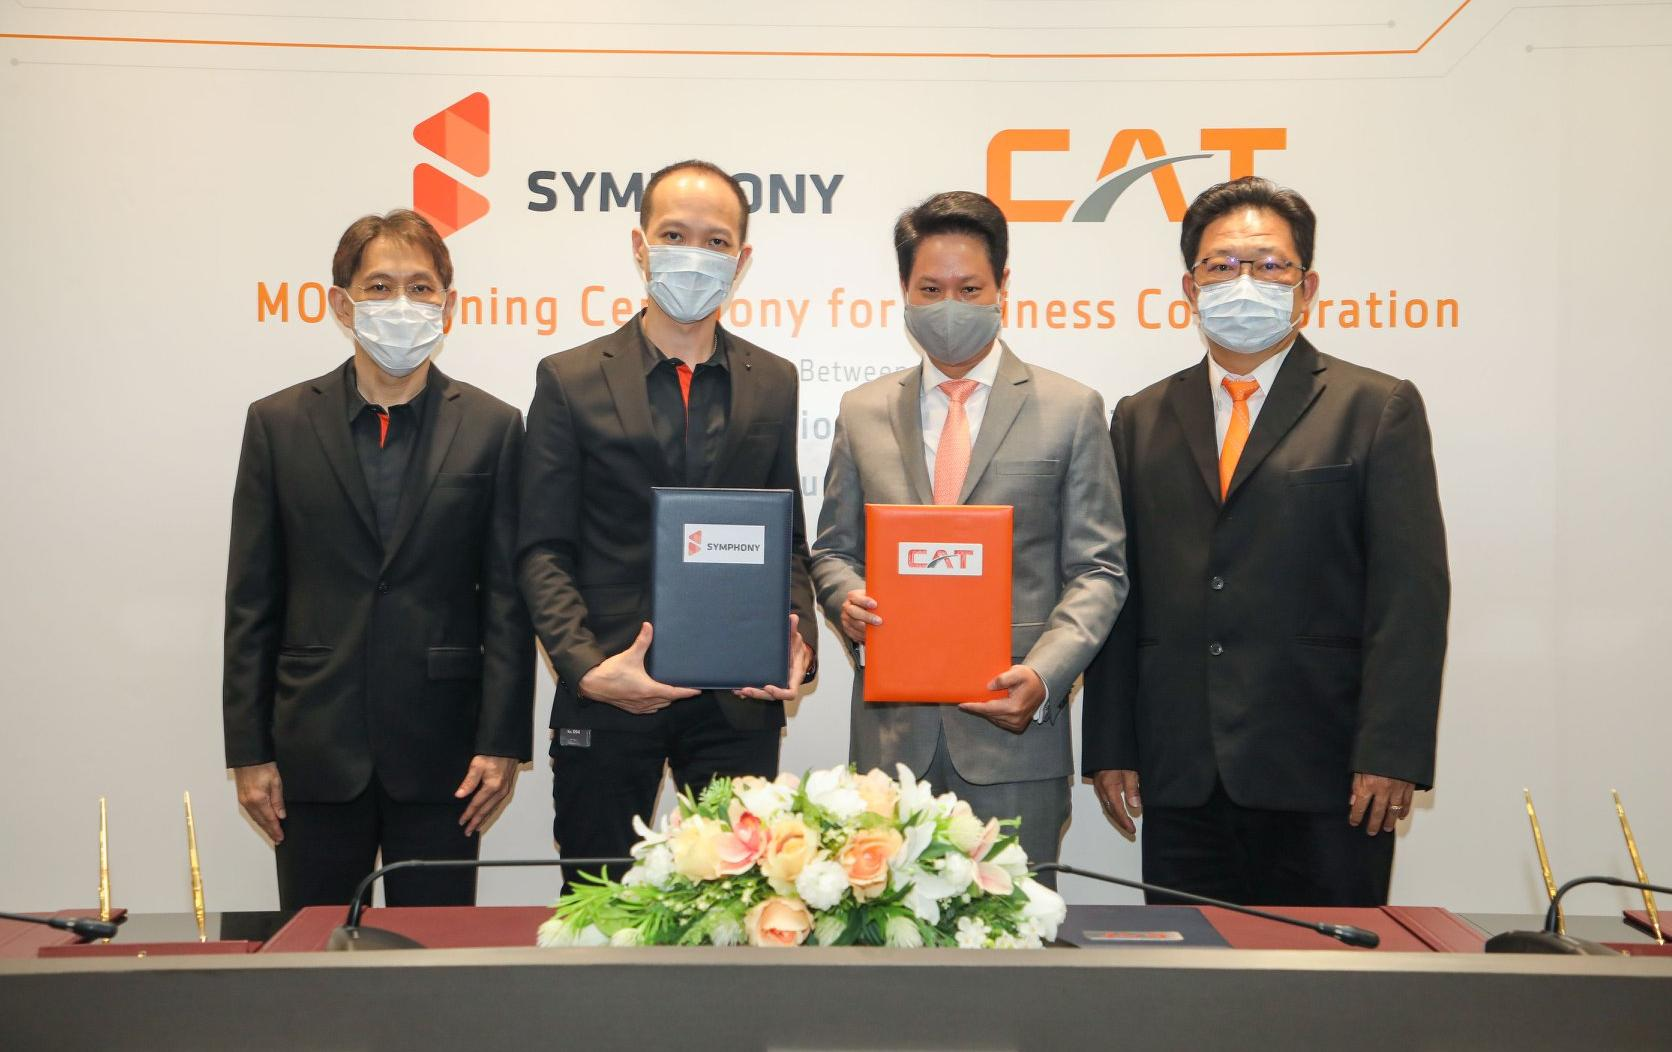 CAT joins hands with SYMPHONY to provide telecommunication networks and services to meet the needs of customers in the digital age.